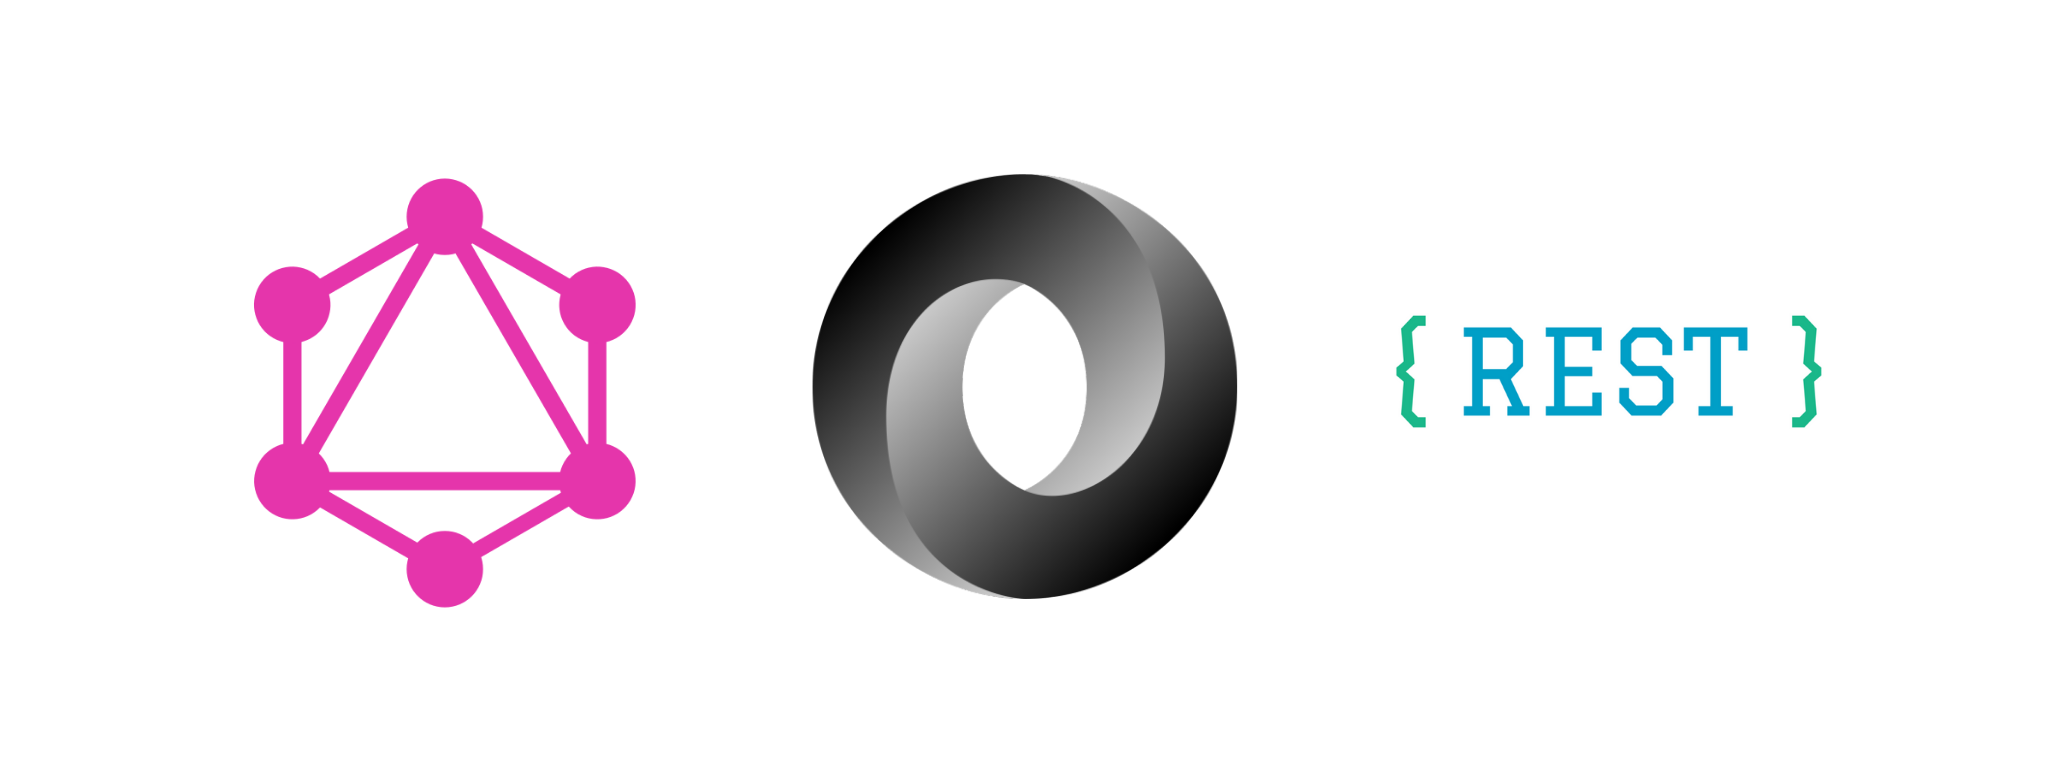 The logos of GraphQL, JSON and REST are displayed horizontally.